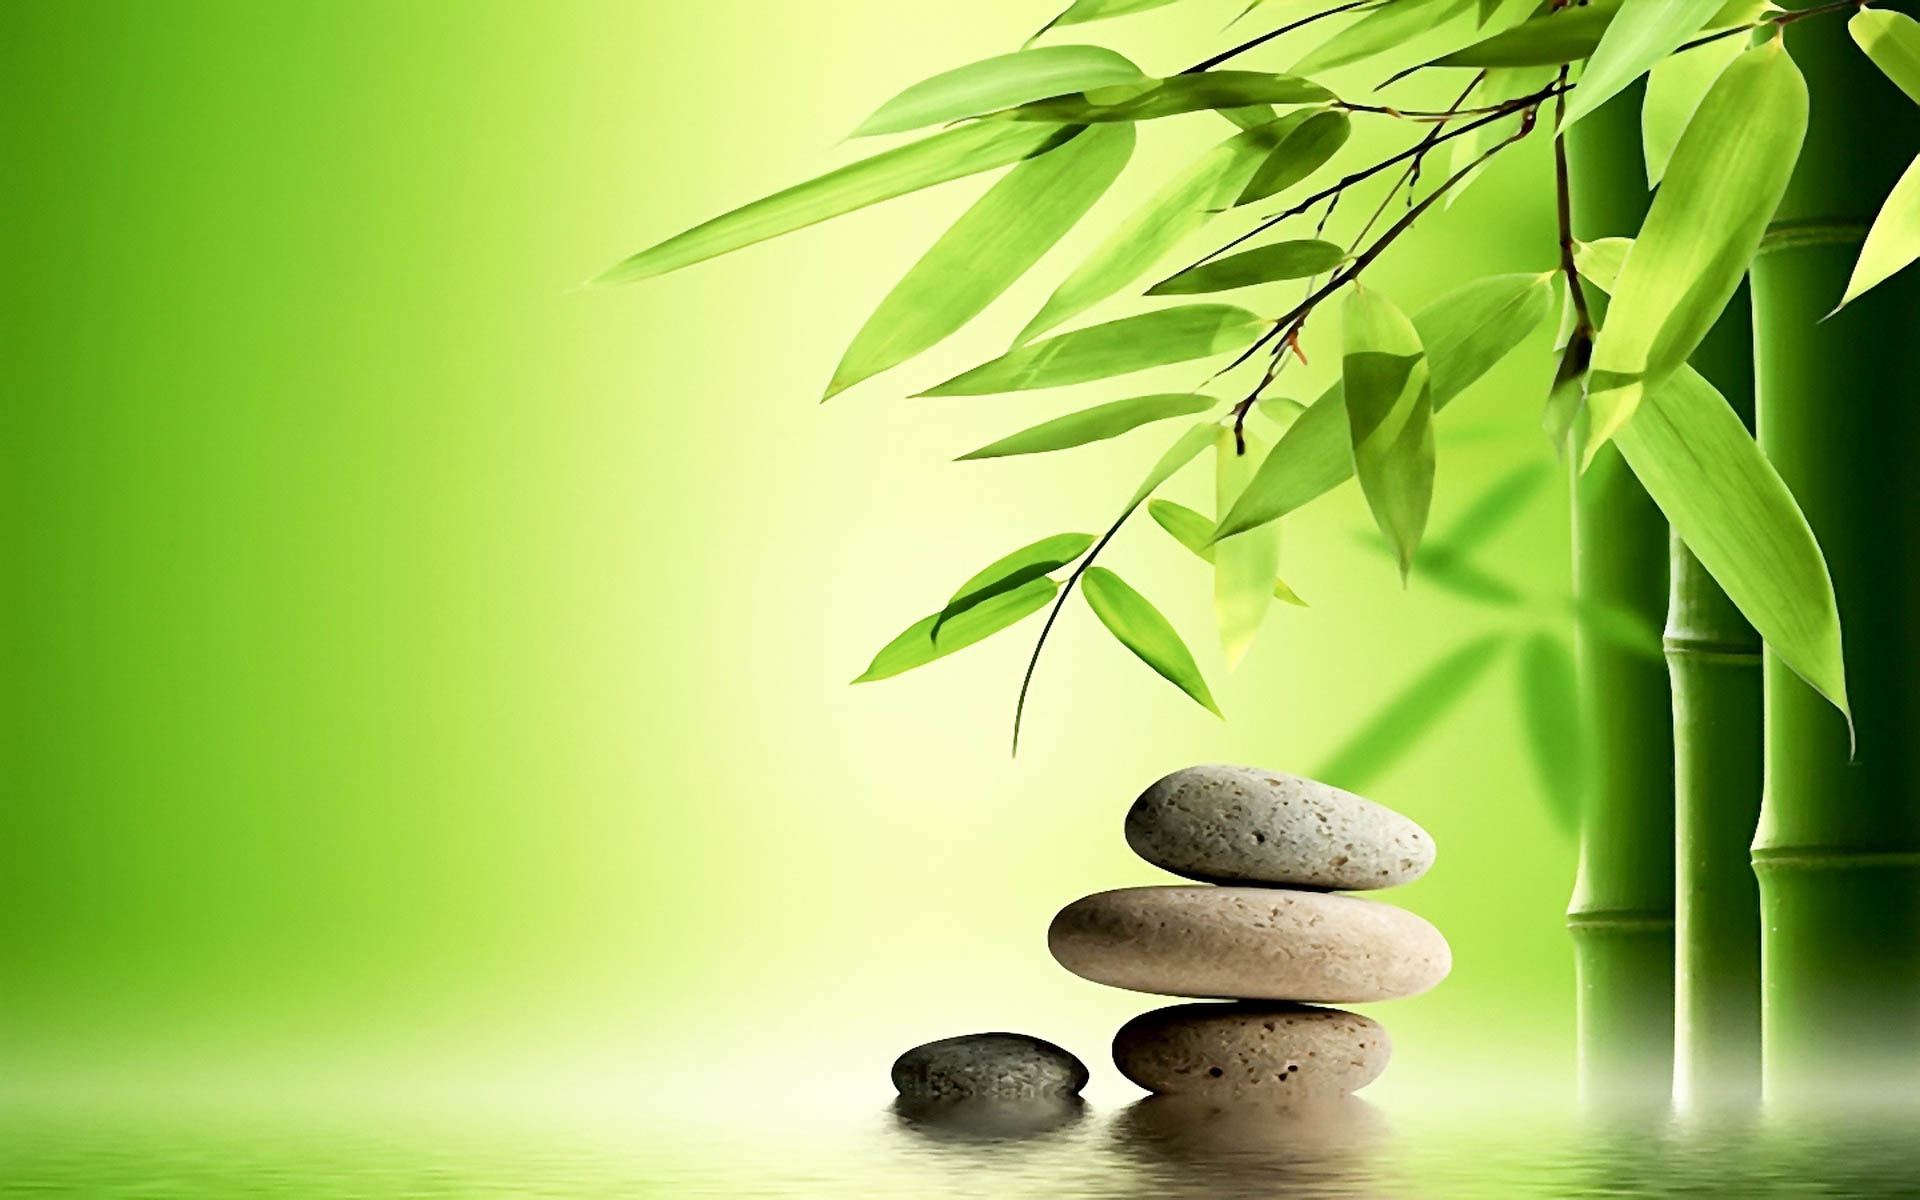 Zen Awesome Hd Wallpapers And Desktop Backgrounds In High Resolution